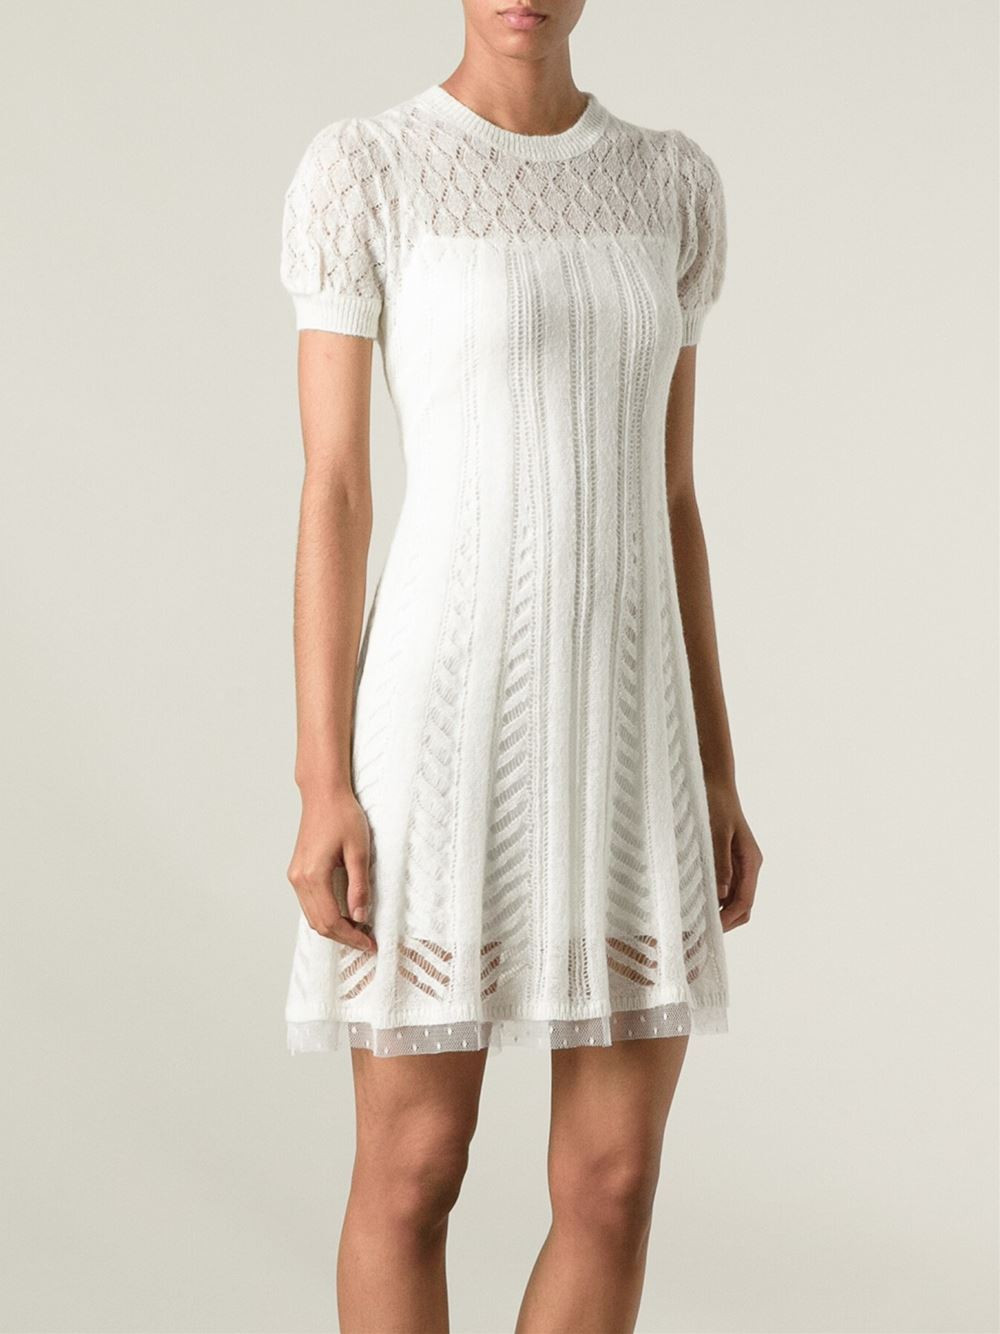 White Crochet Dress New Lyst Red Valentino Crochet Knit Dress In White Of Adorable 49 Pics White Crochet Dress